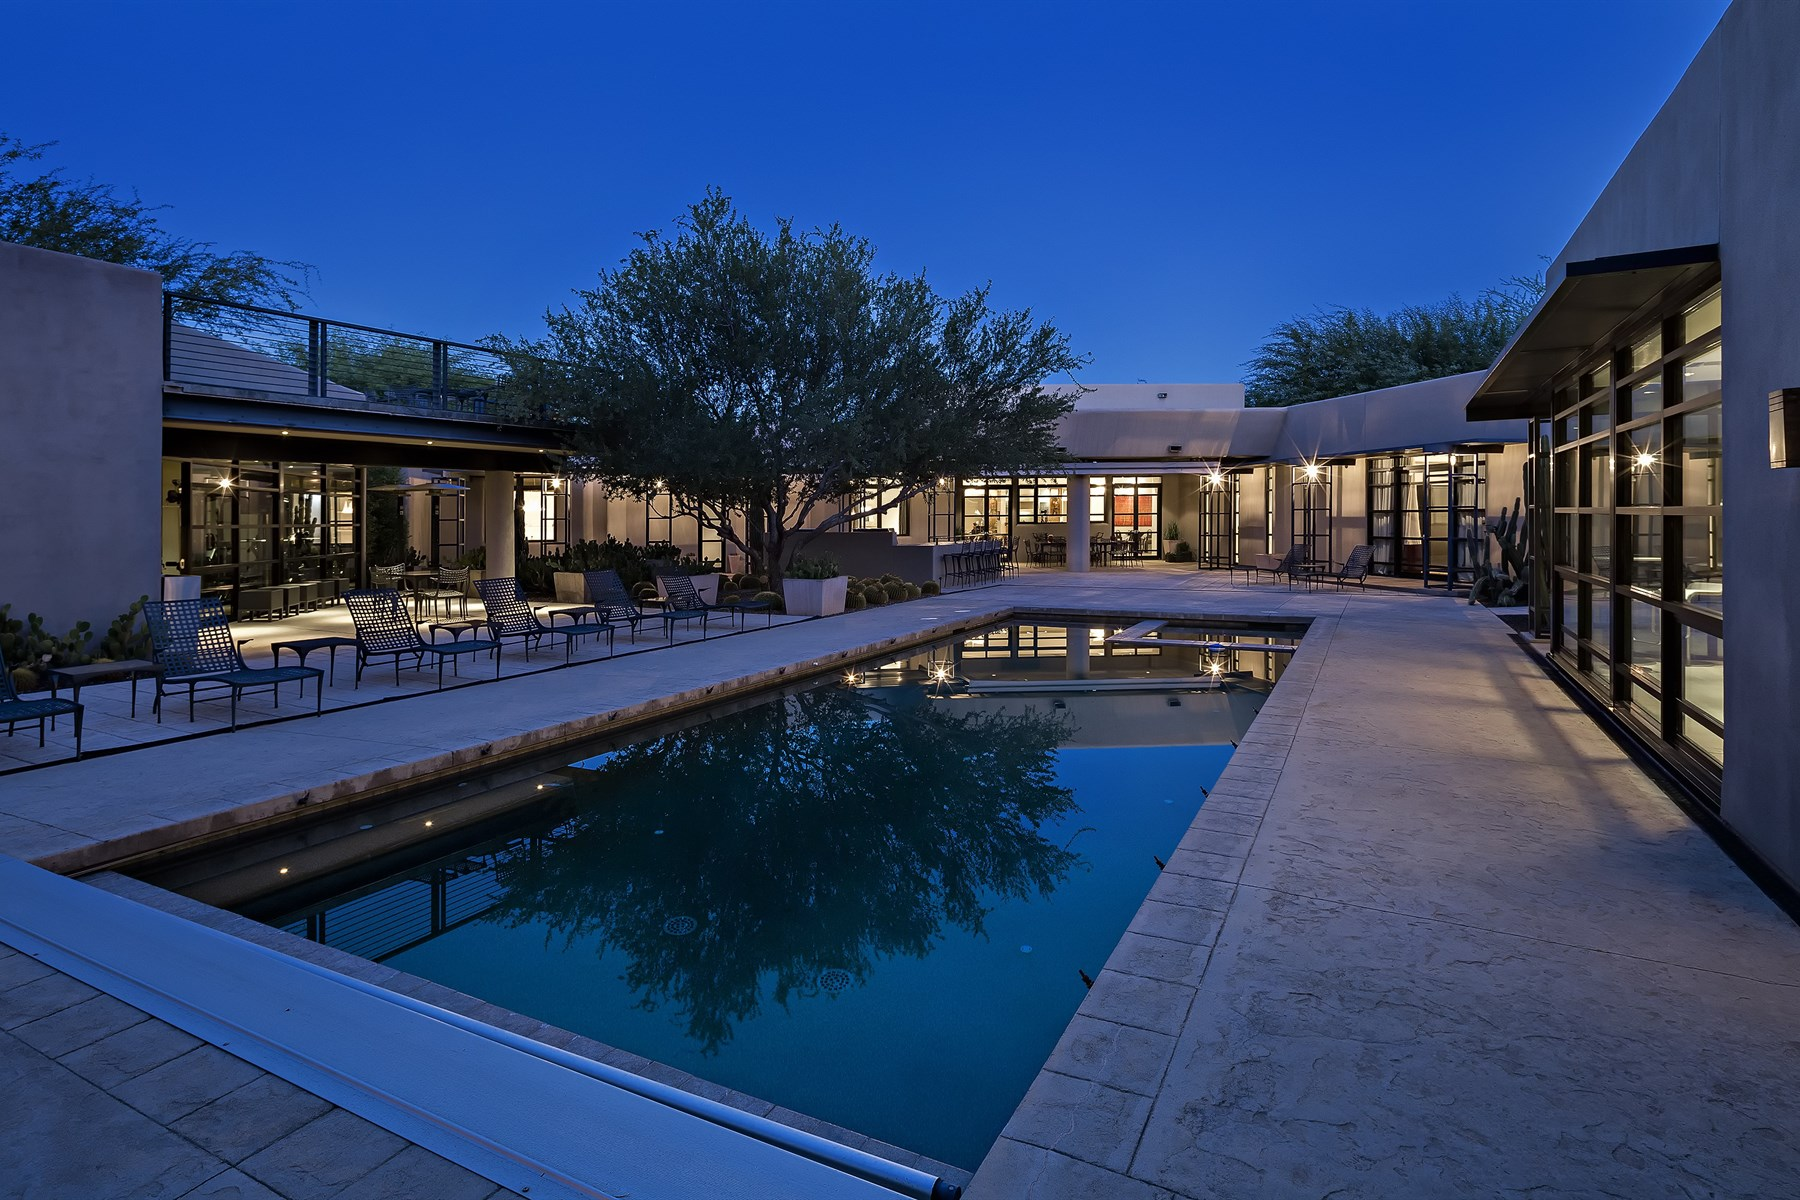 Maison unifamiliale pour l Vente à sophisticated cosmopolitan residence of modern architecture in La Vista 7824 N 65TH ST Paradise Valley, Arizona, 85253 États-Unis